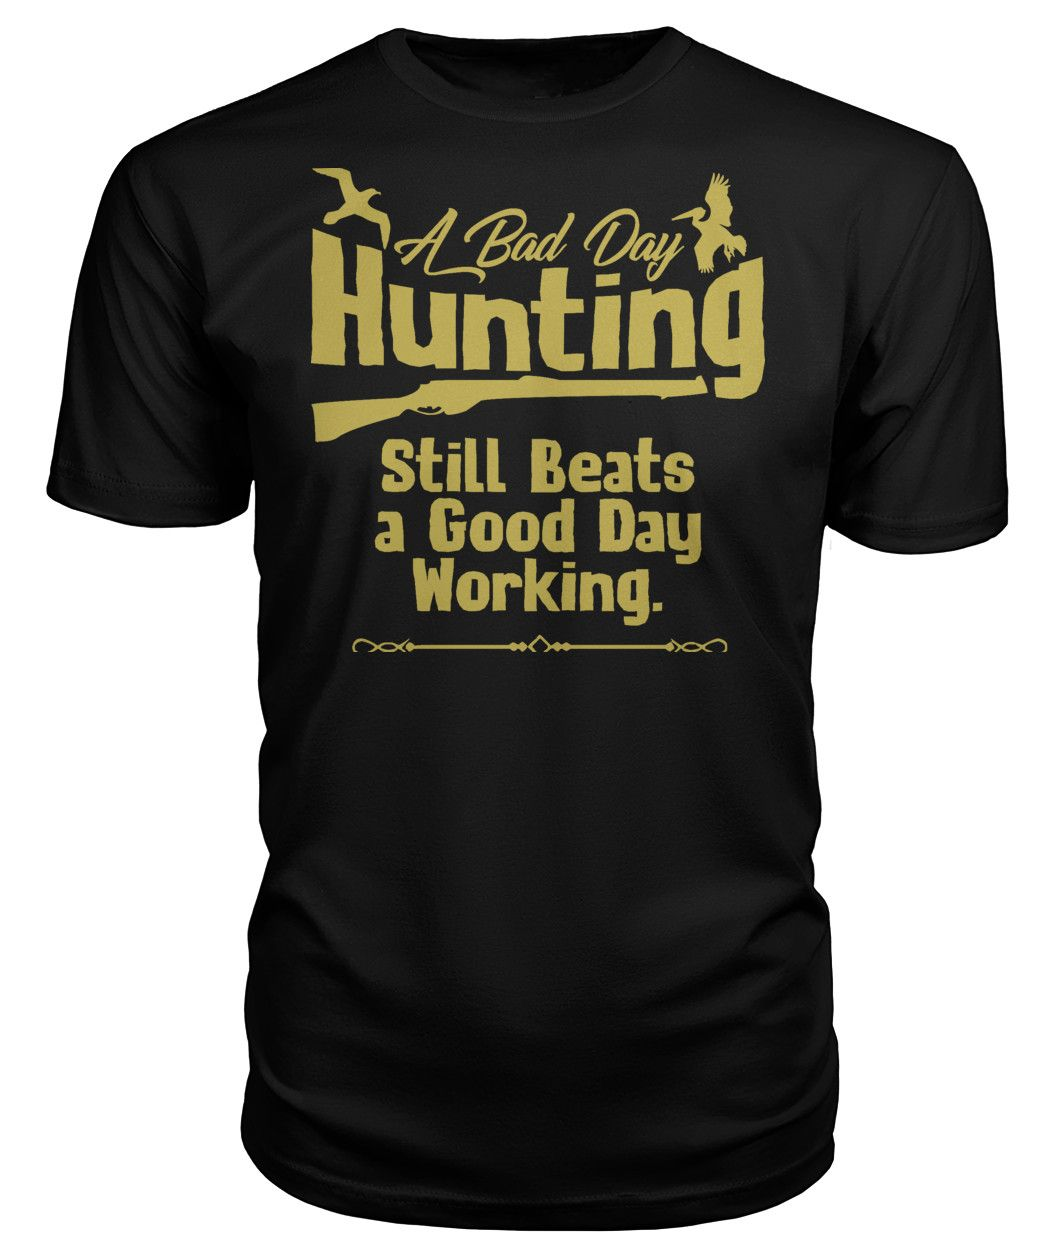 accf5840f Funny Hunting T Shirt Team Gifts For Hunters Hunting Shirt Team T Shirt  Outdoor Clothing Hunting Squ | Products | Hunting shirts, Team t shirts, ...